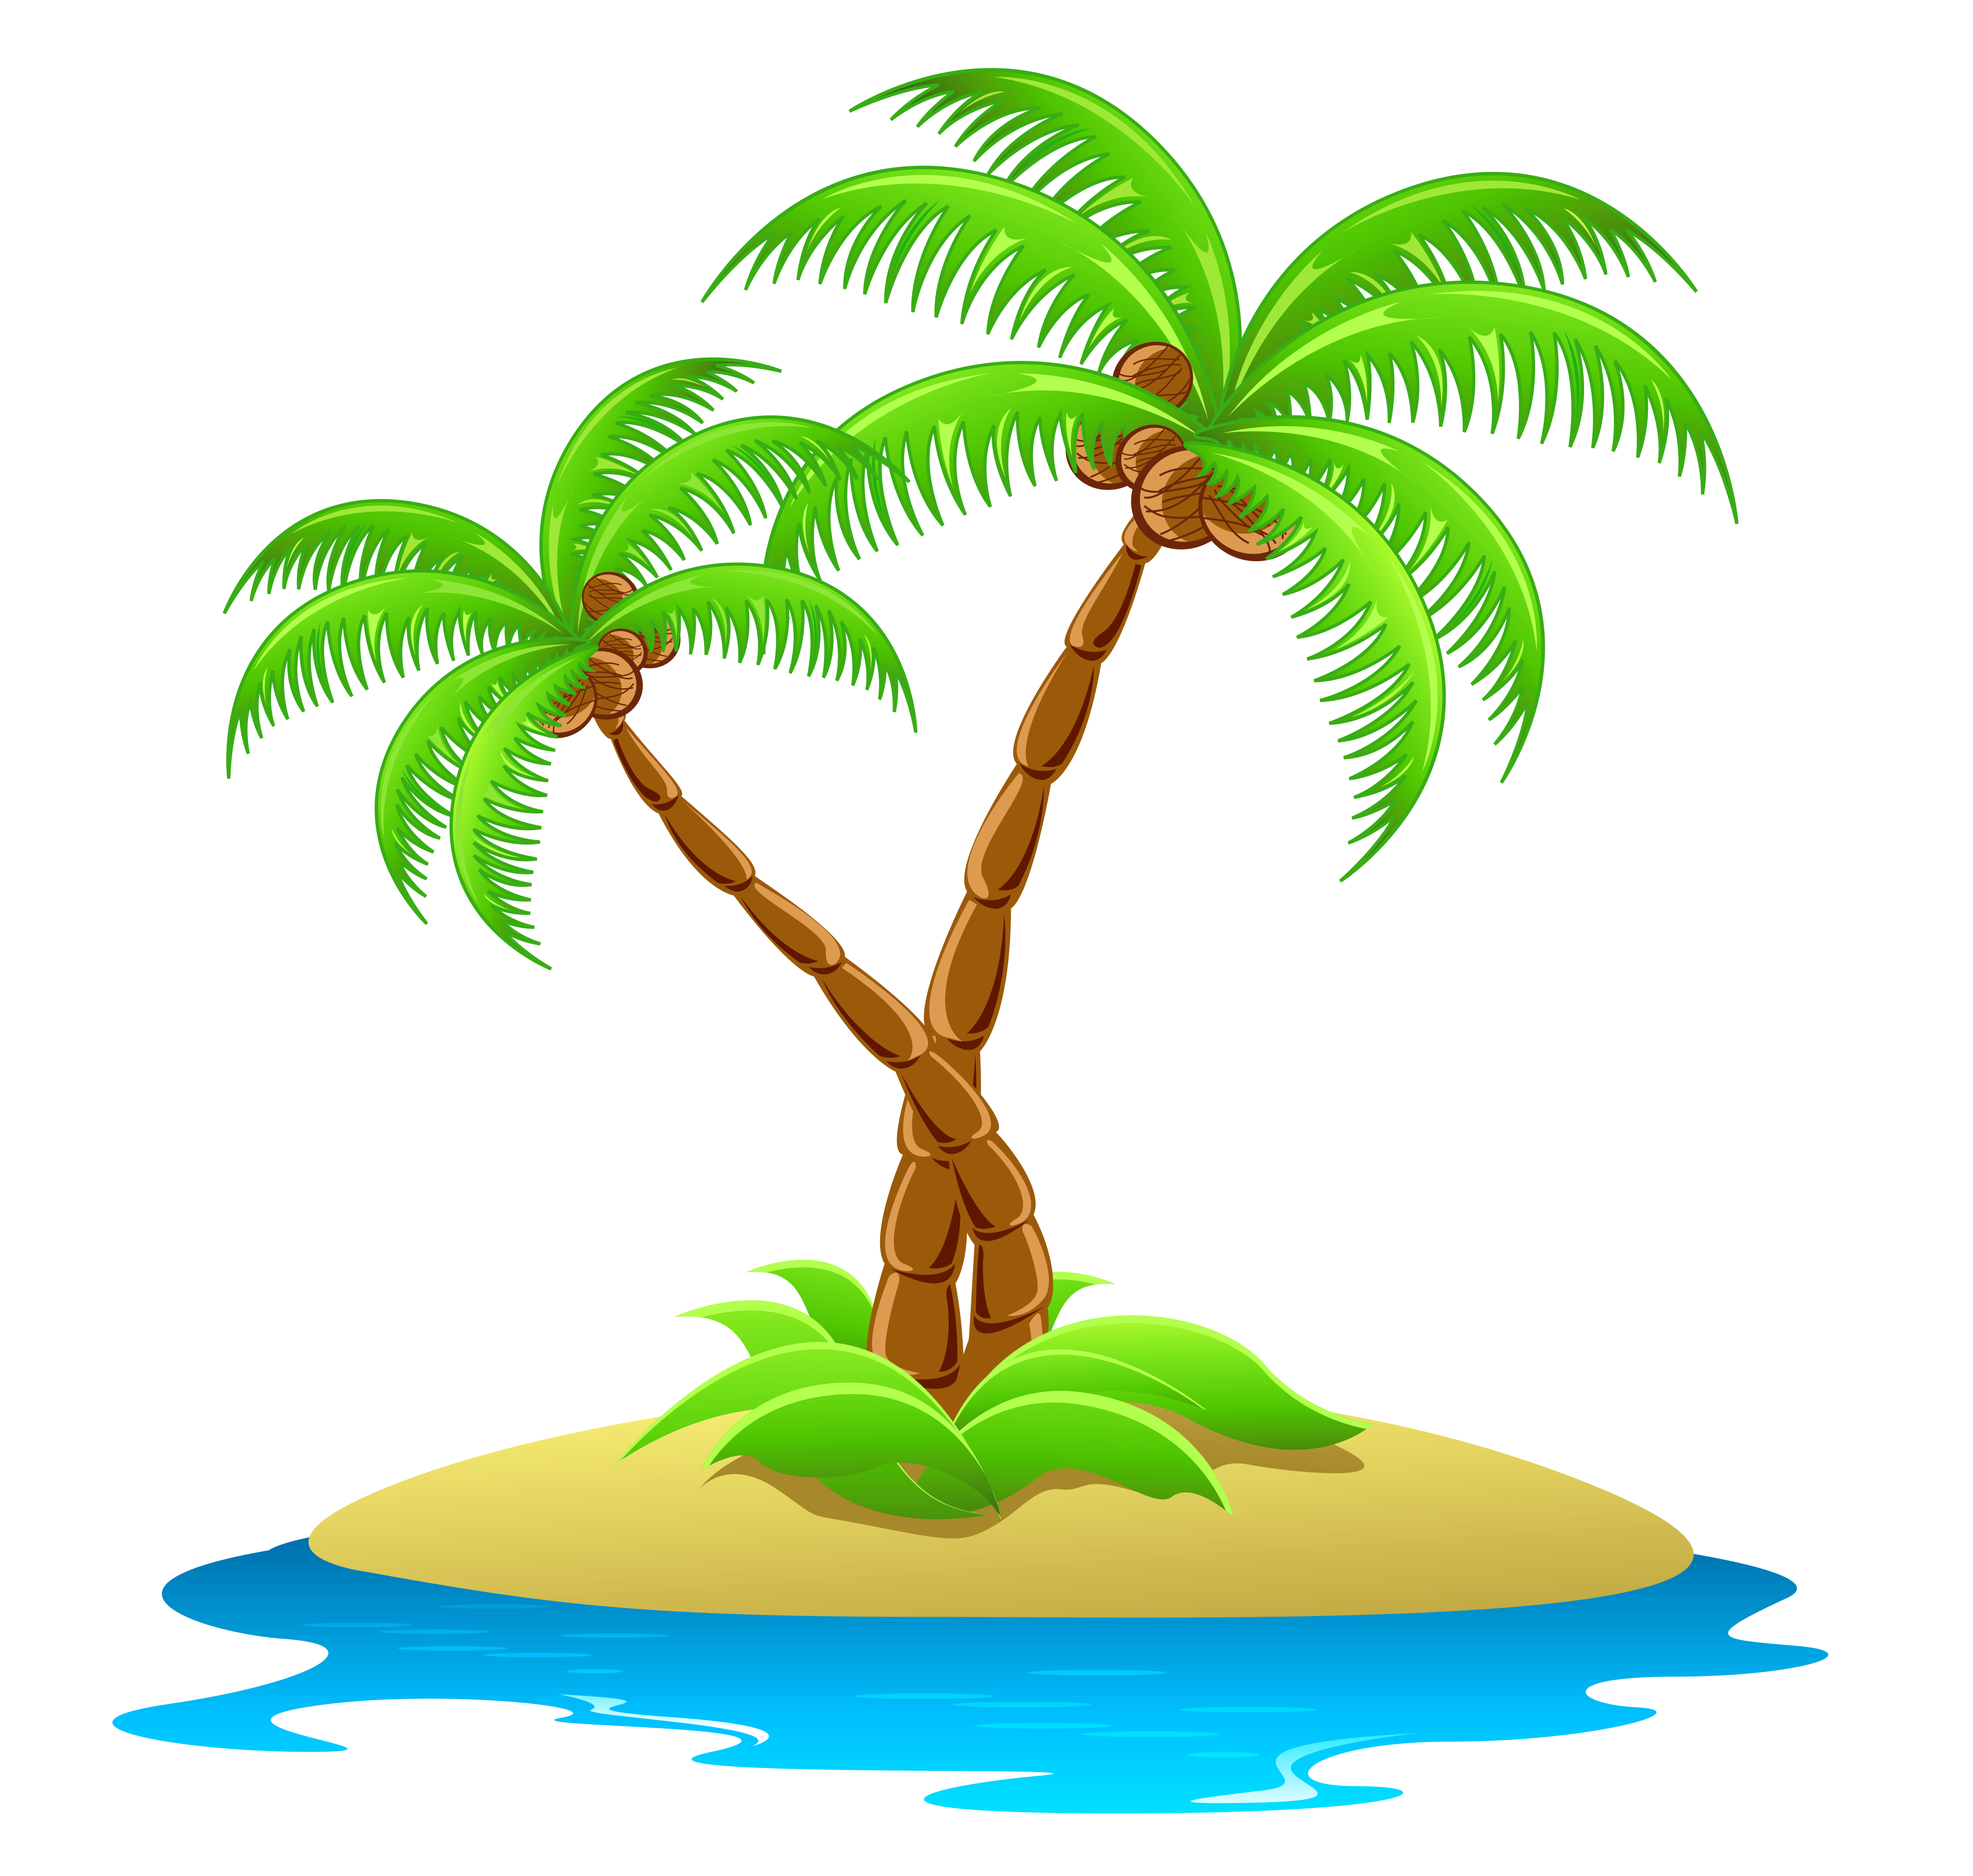 Island Png Clipart - Island, Transparent background PNG HD thumbnail